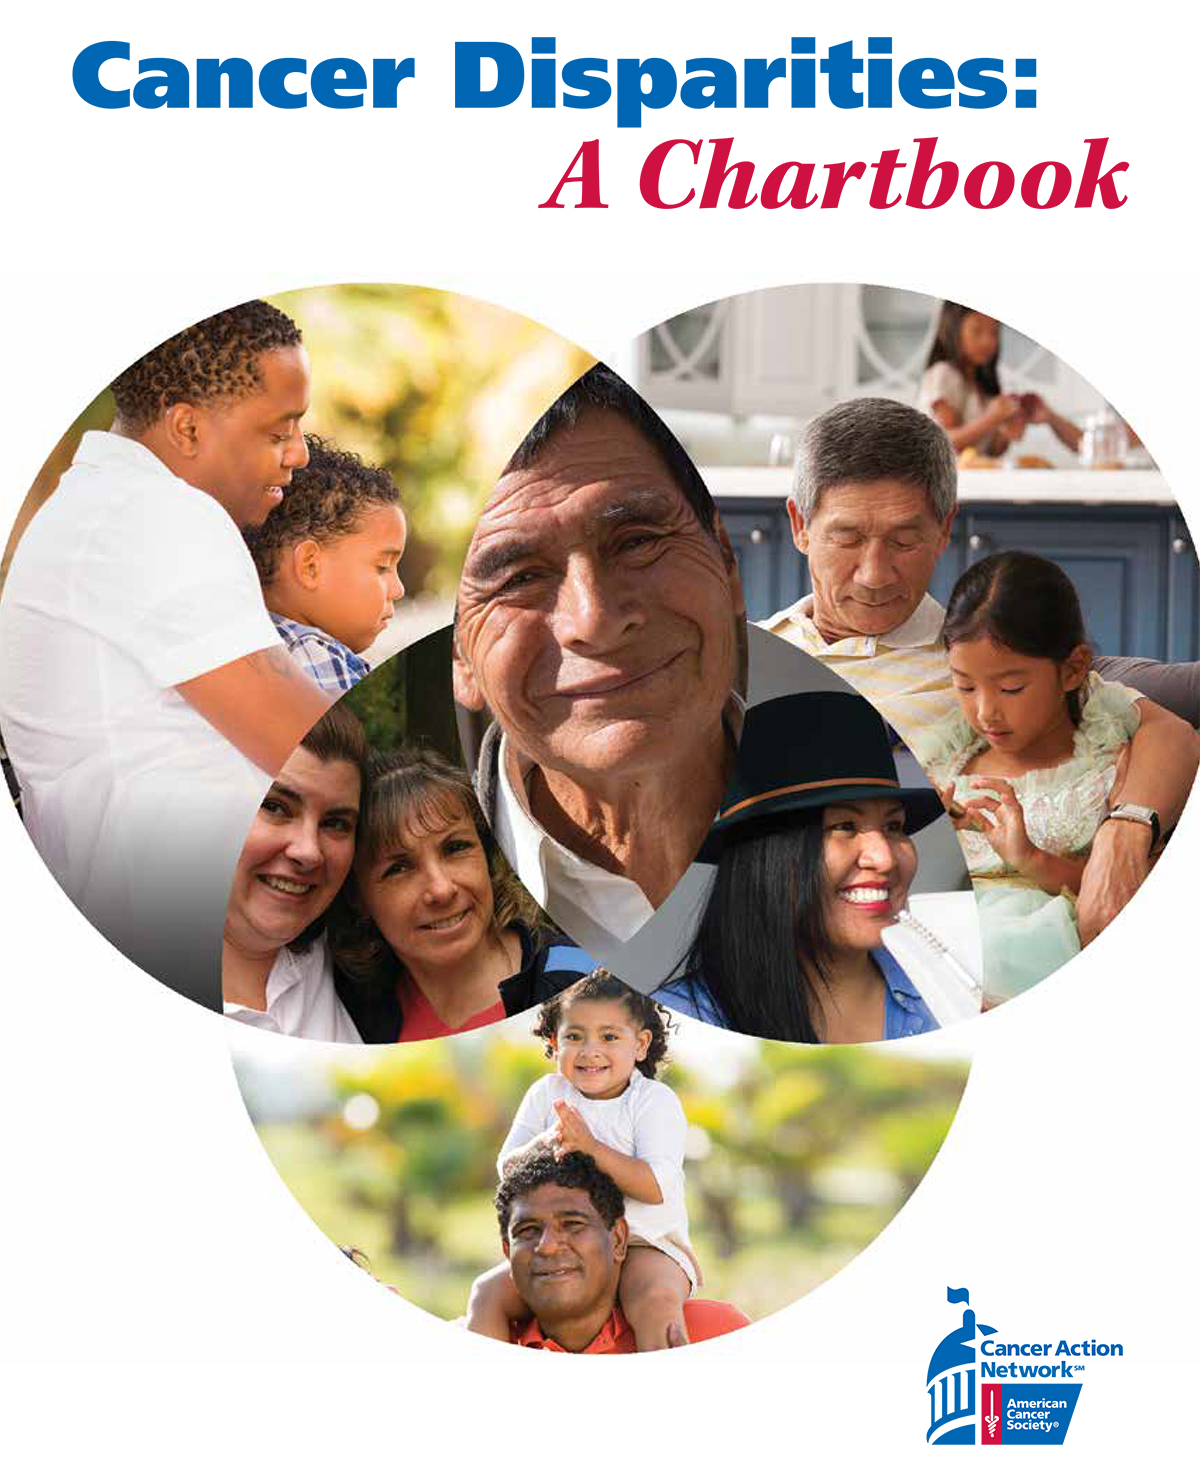 Disparities in Cancer Chartbook cover